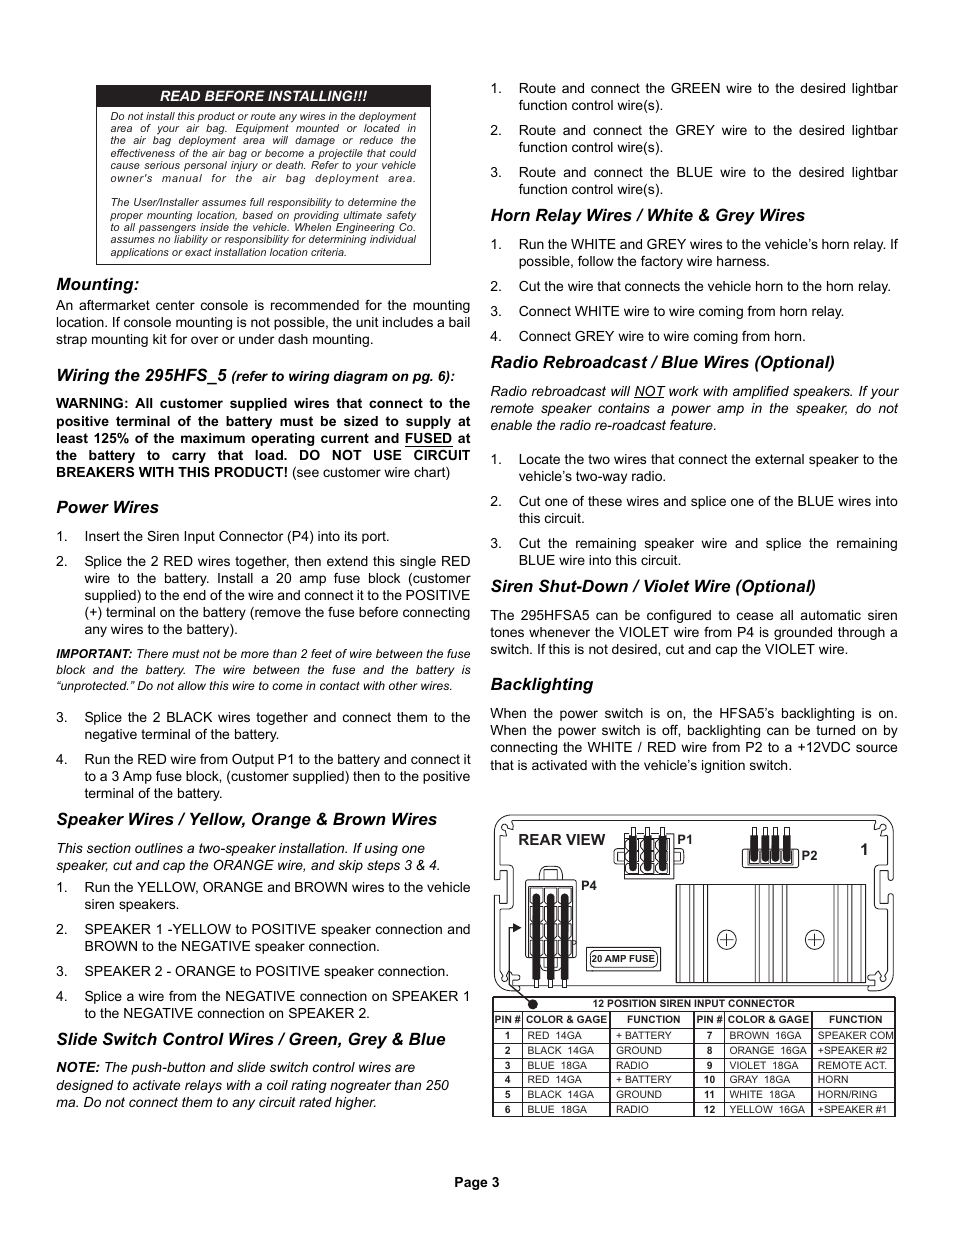 Whelen 295hfsa5 Wiring Diagram Free Download 295hfsa1 Mounting The 295hfs 5 Power Wires User At